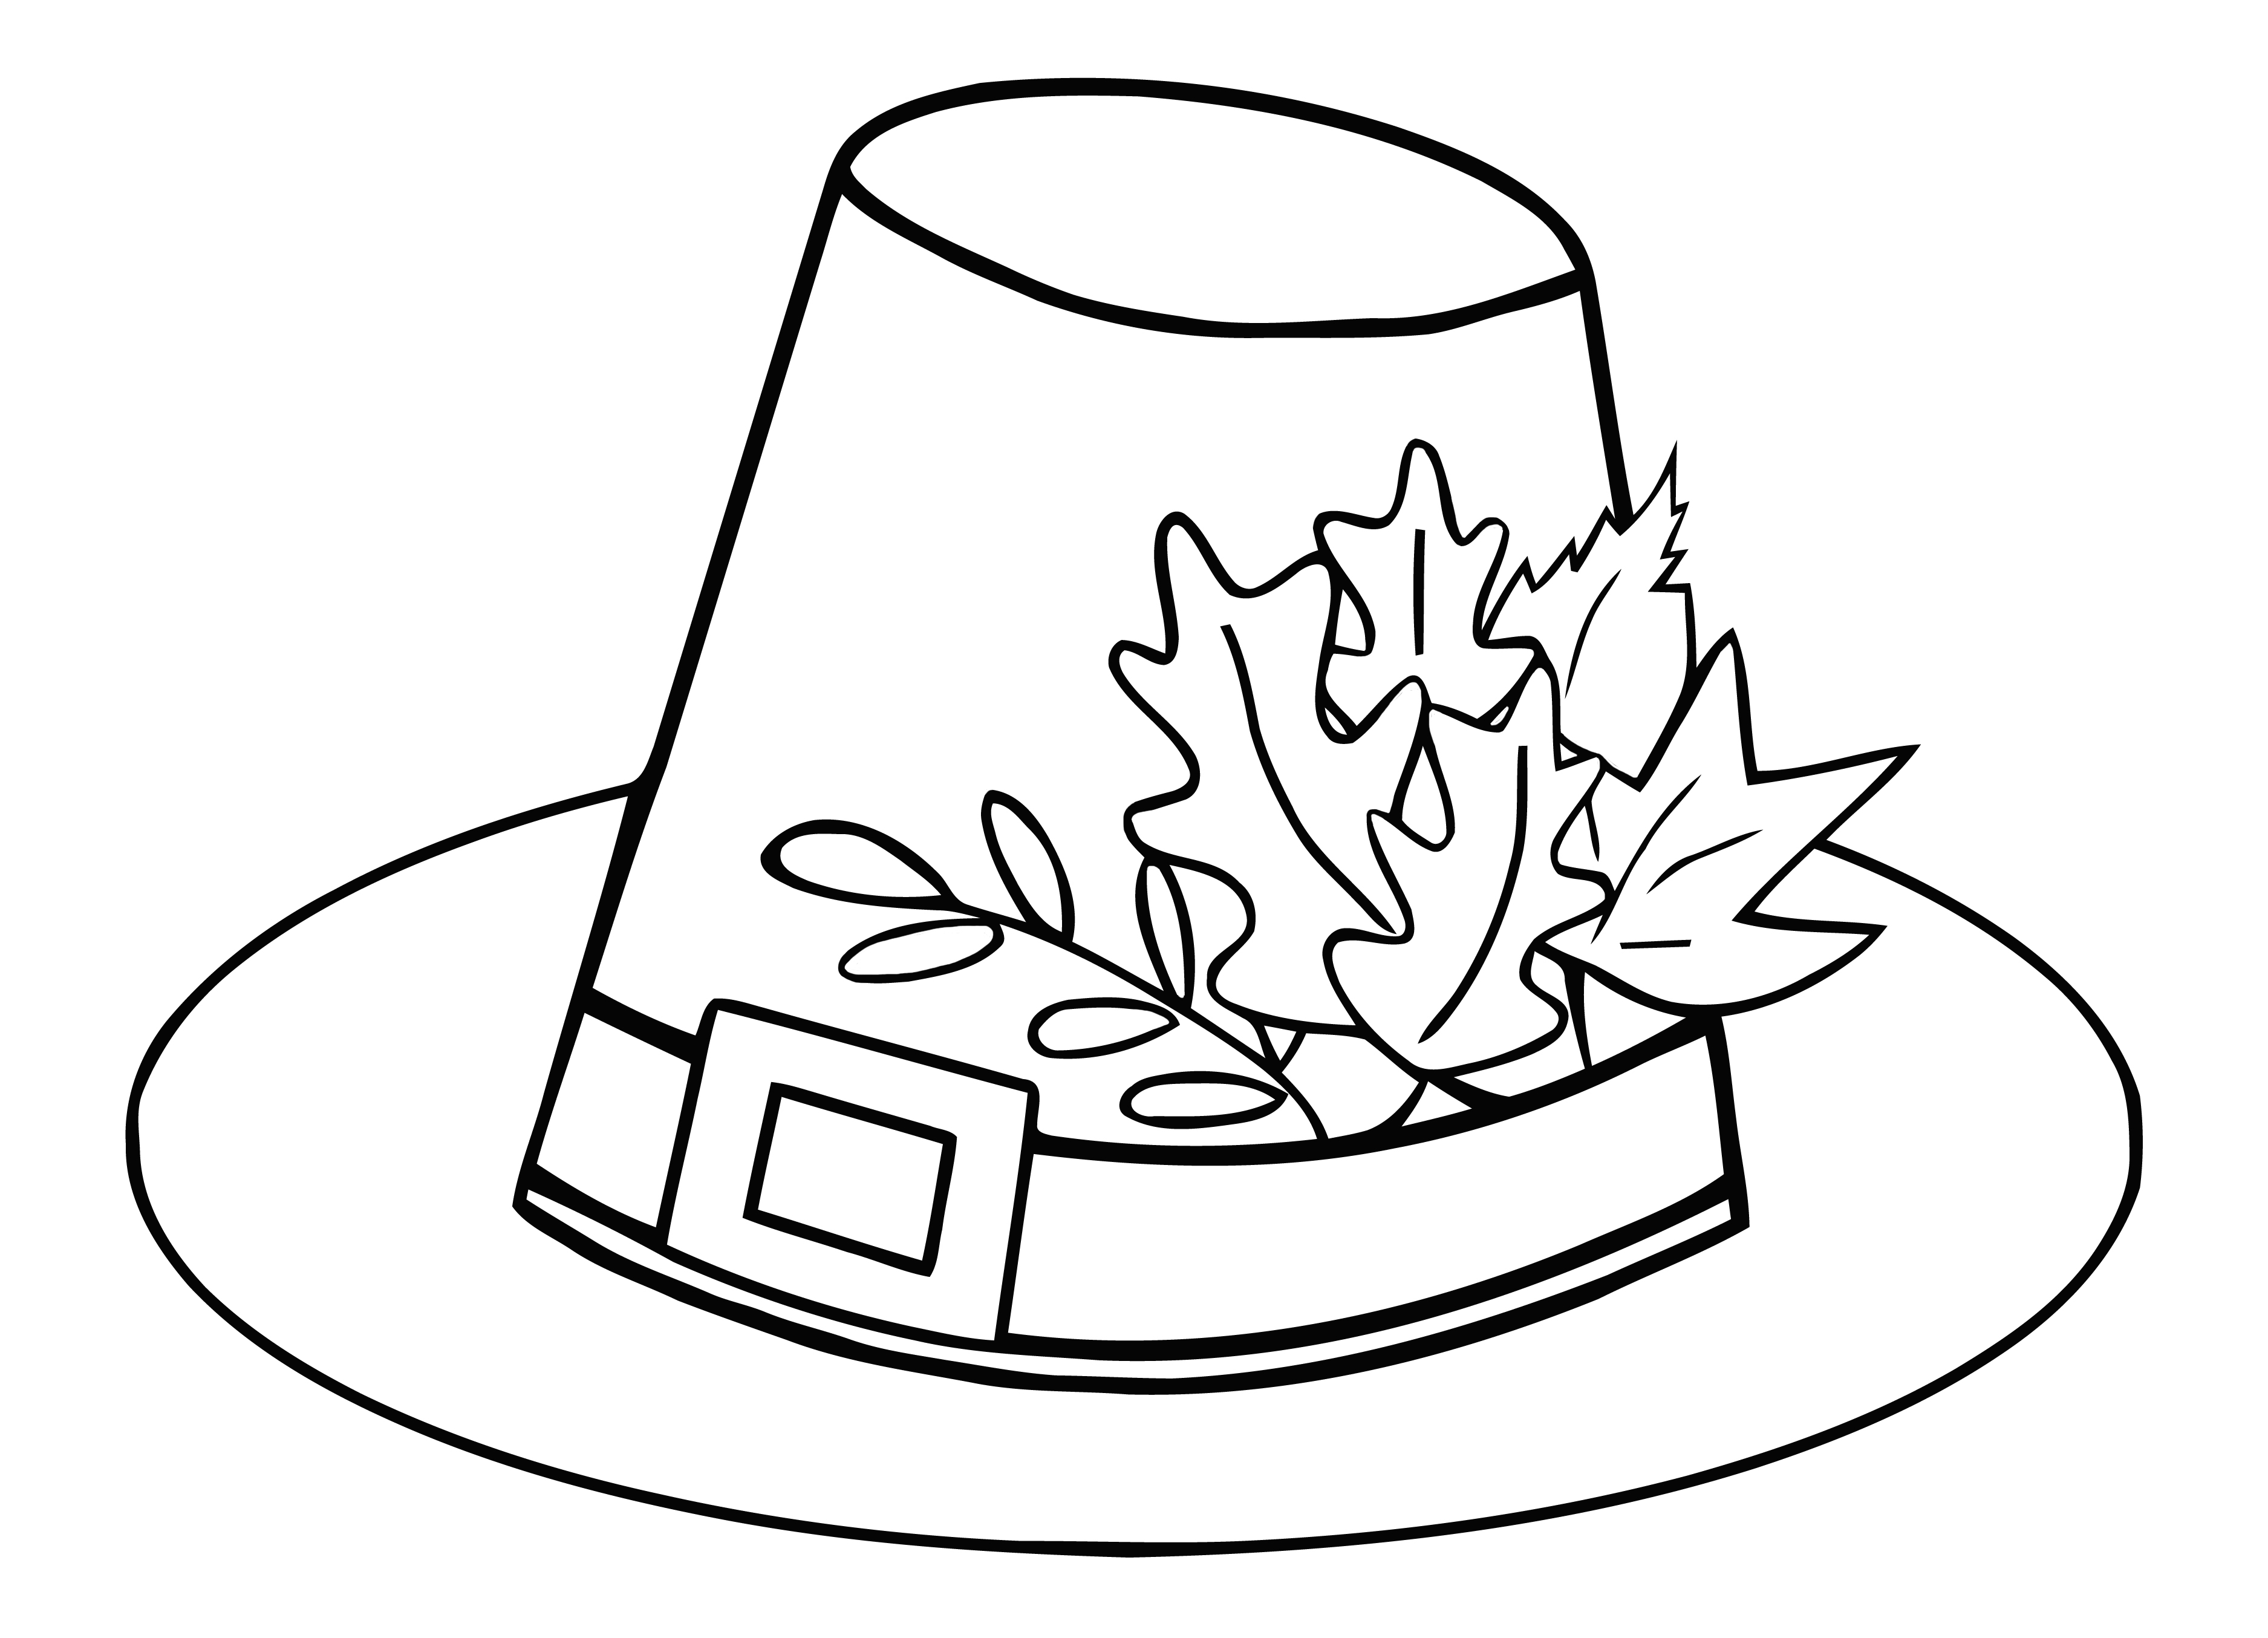 coloring book ~ Free Childrens Colouring Pages To Print Unique ... | 2708x3750